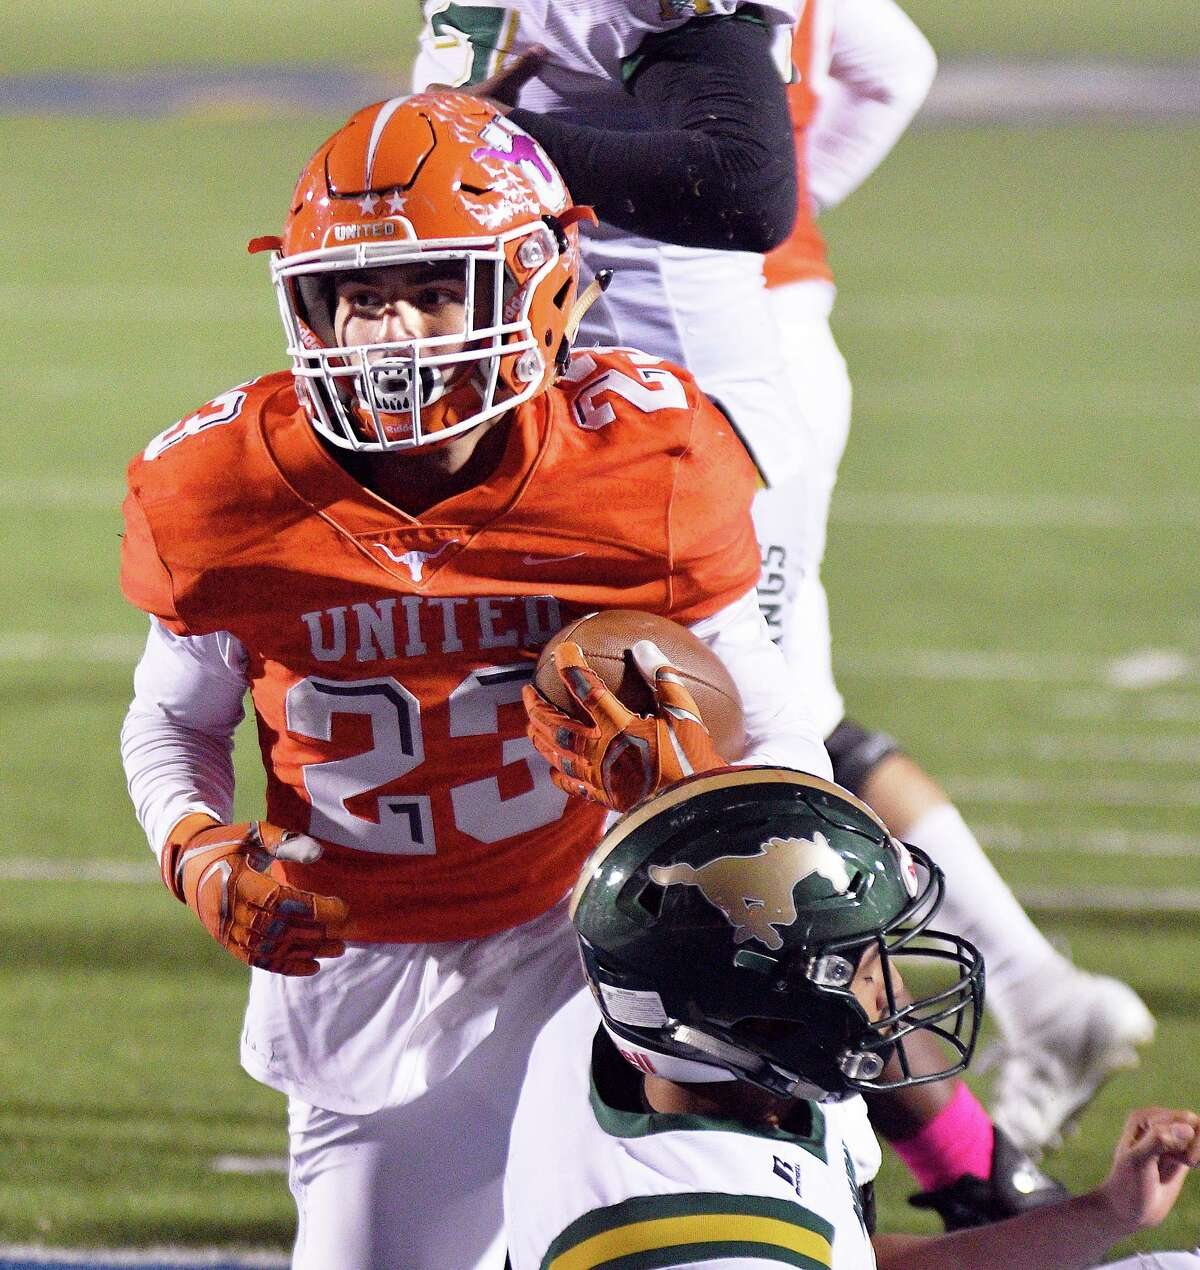 Carlos Jaime ran for 48 yards and a touchdown in United's 45-14 win over Nixon on Friday.